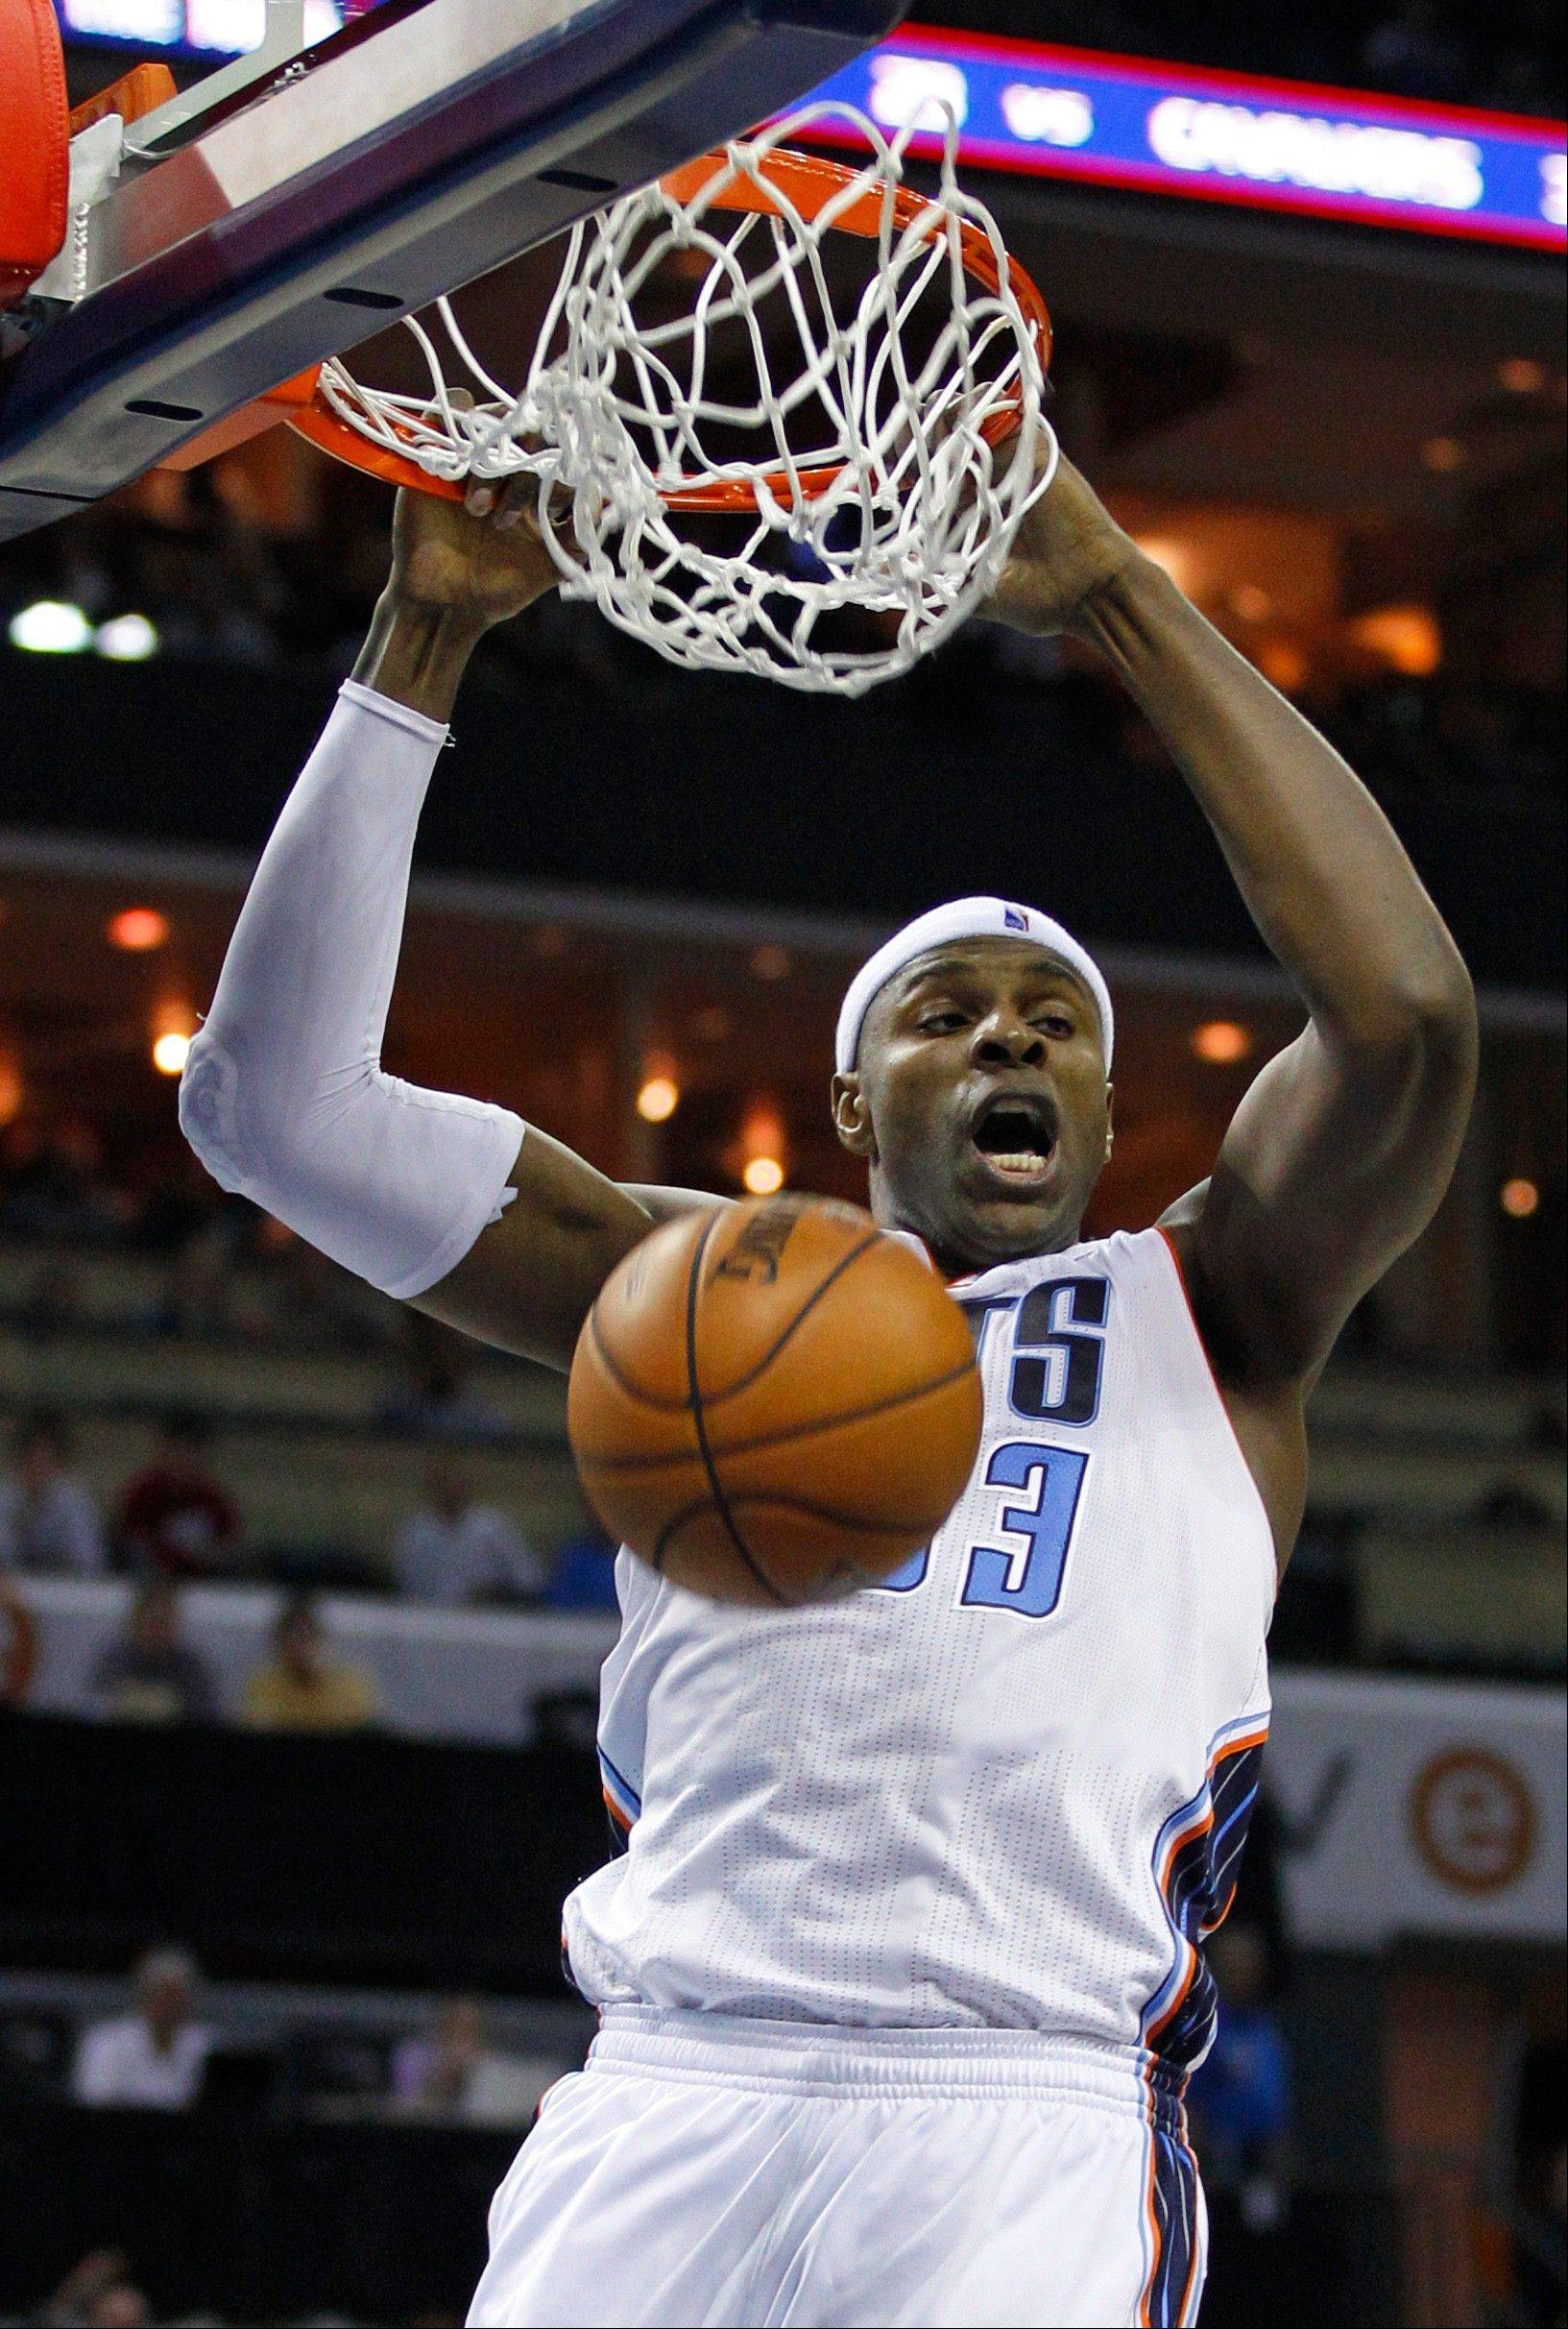 The Bobcats' Brendan Haywood dunks against the Toronto Raptors during the first half Wednesday in Charlotte, N.C.